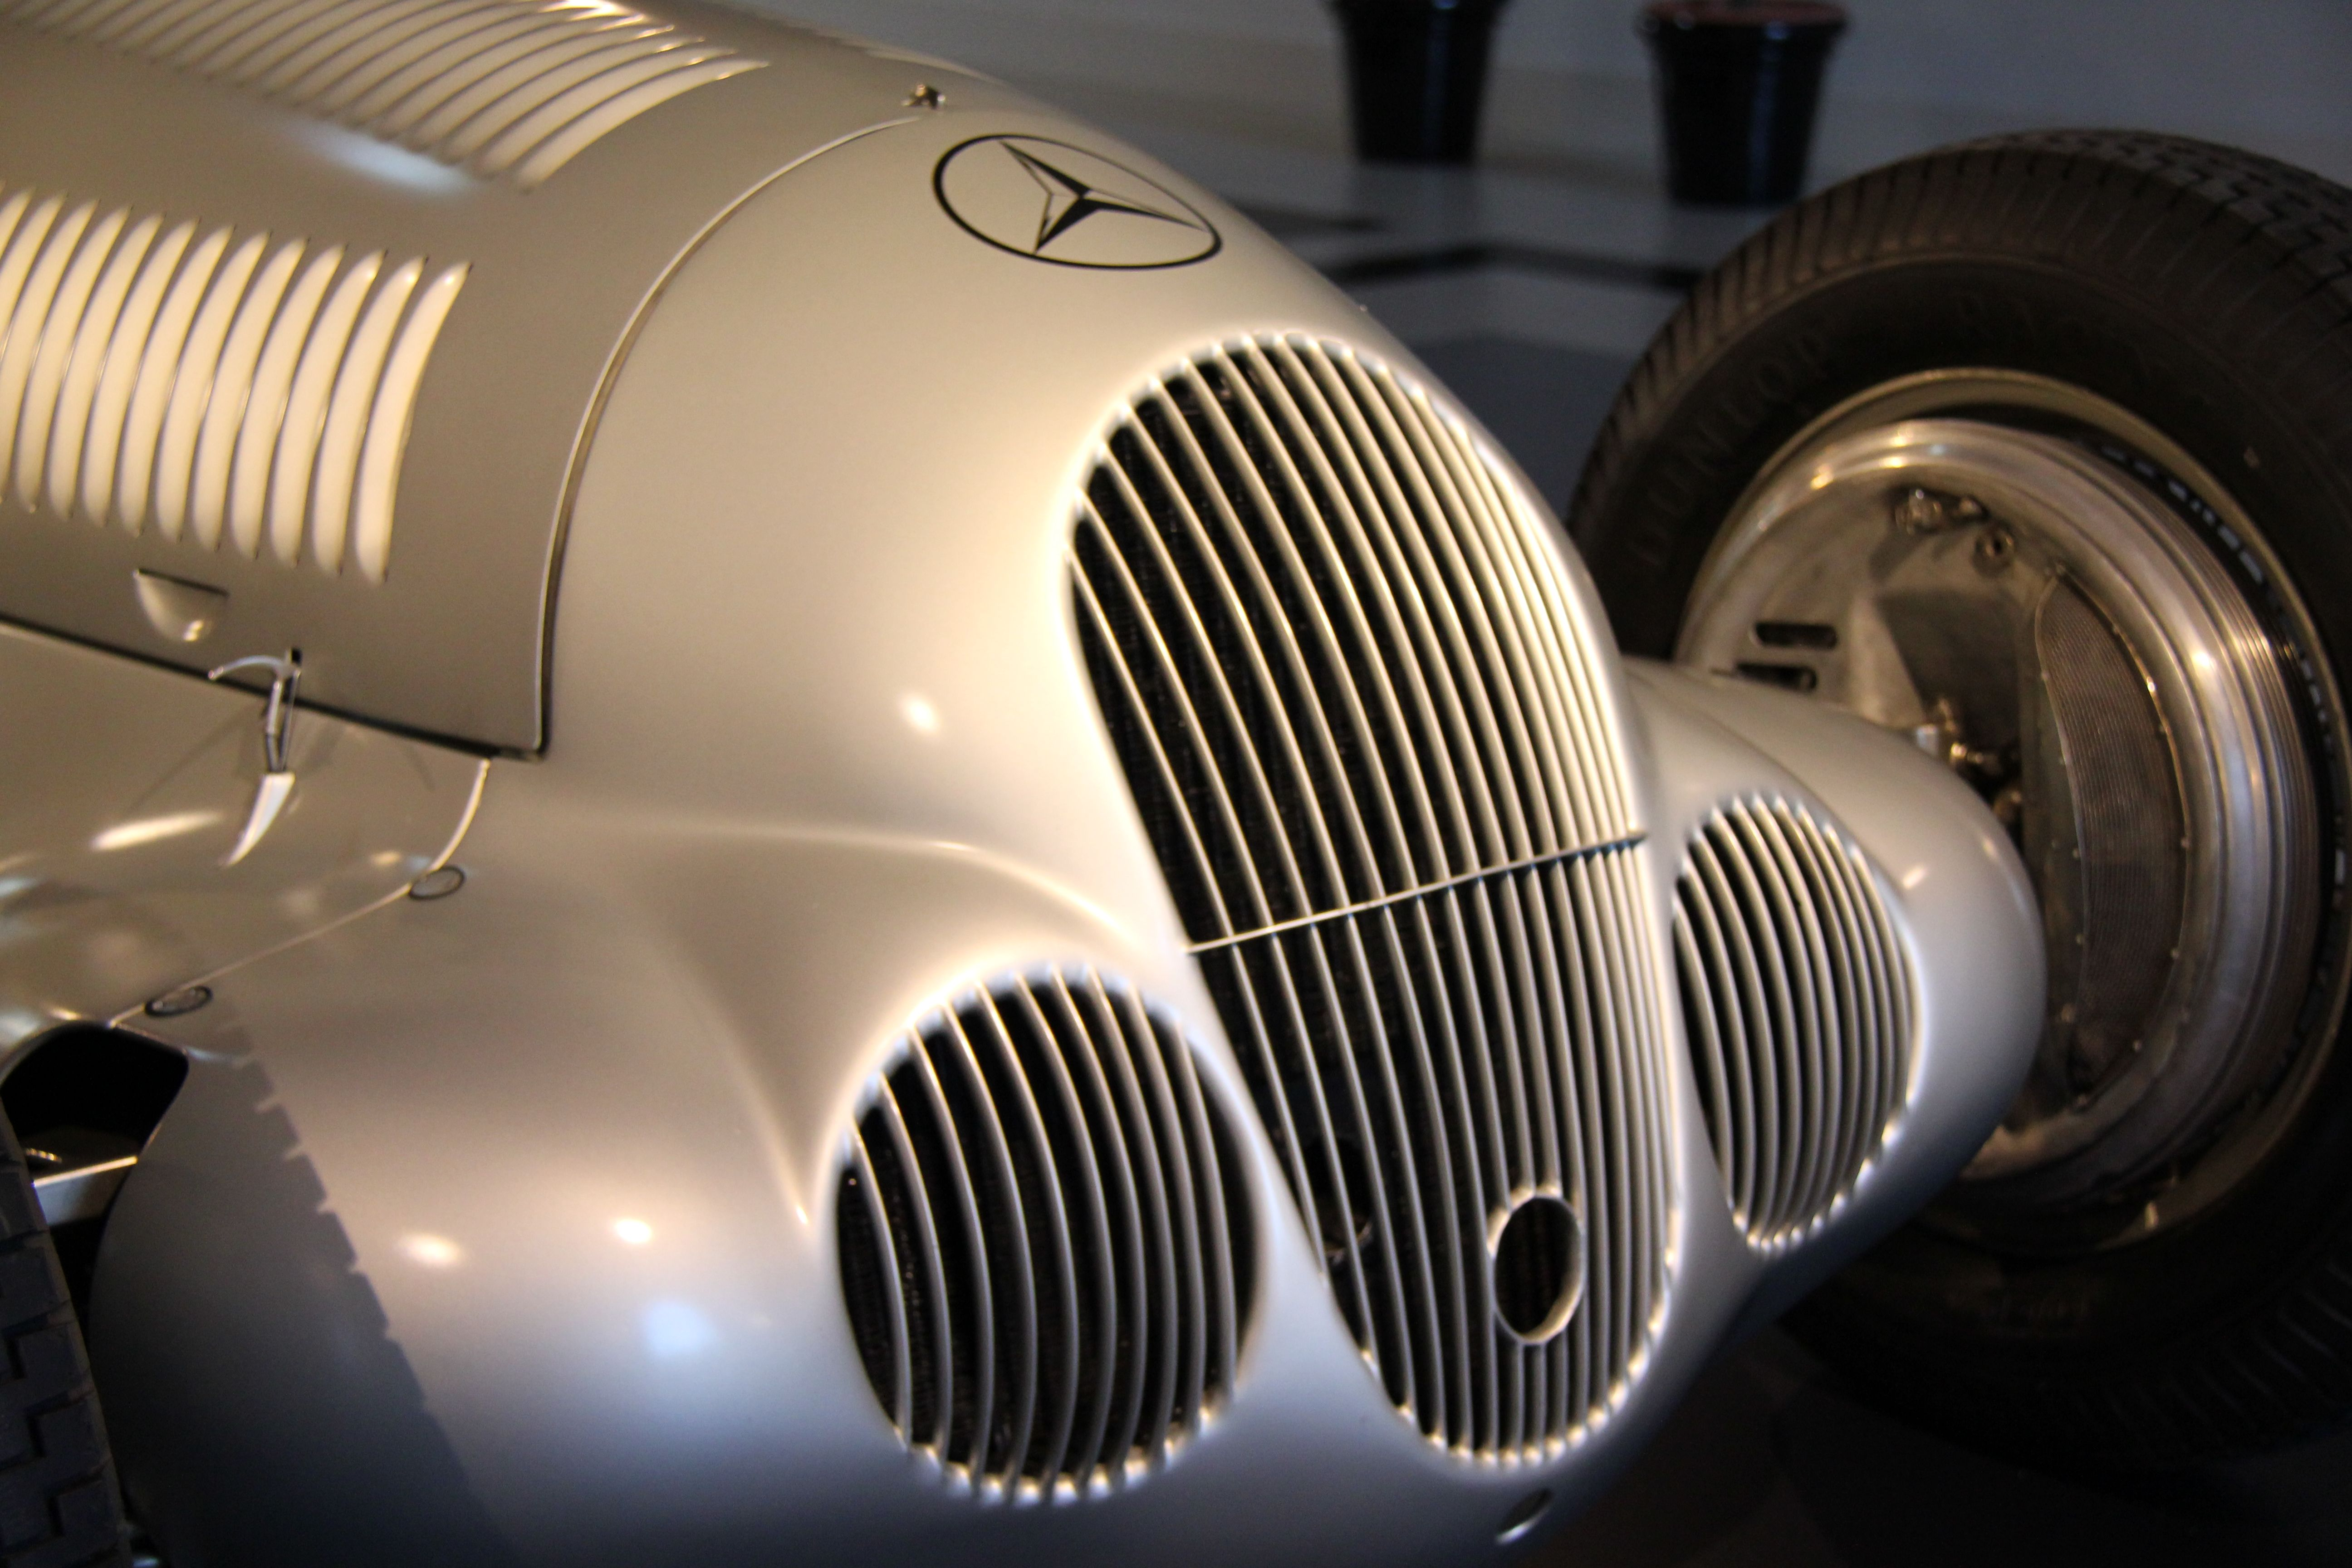 Silver Arrows exhibition at the Louwman Museum in the